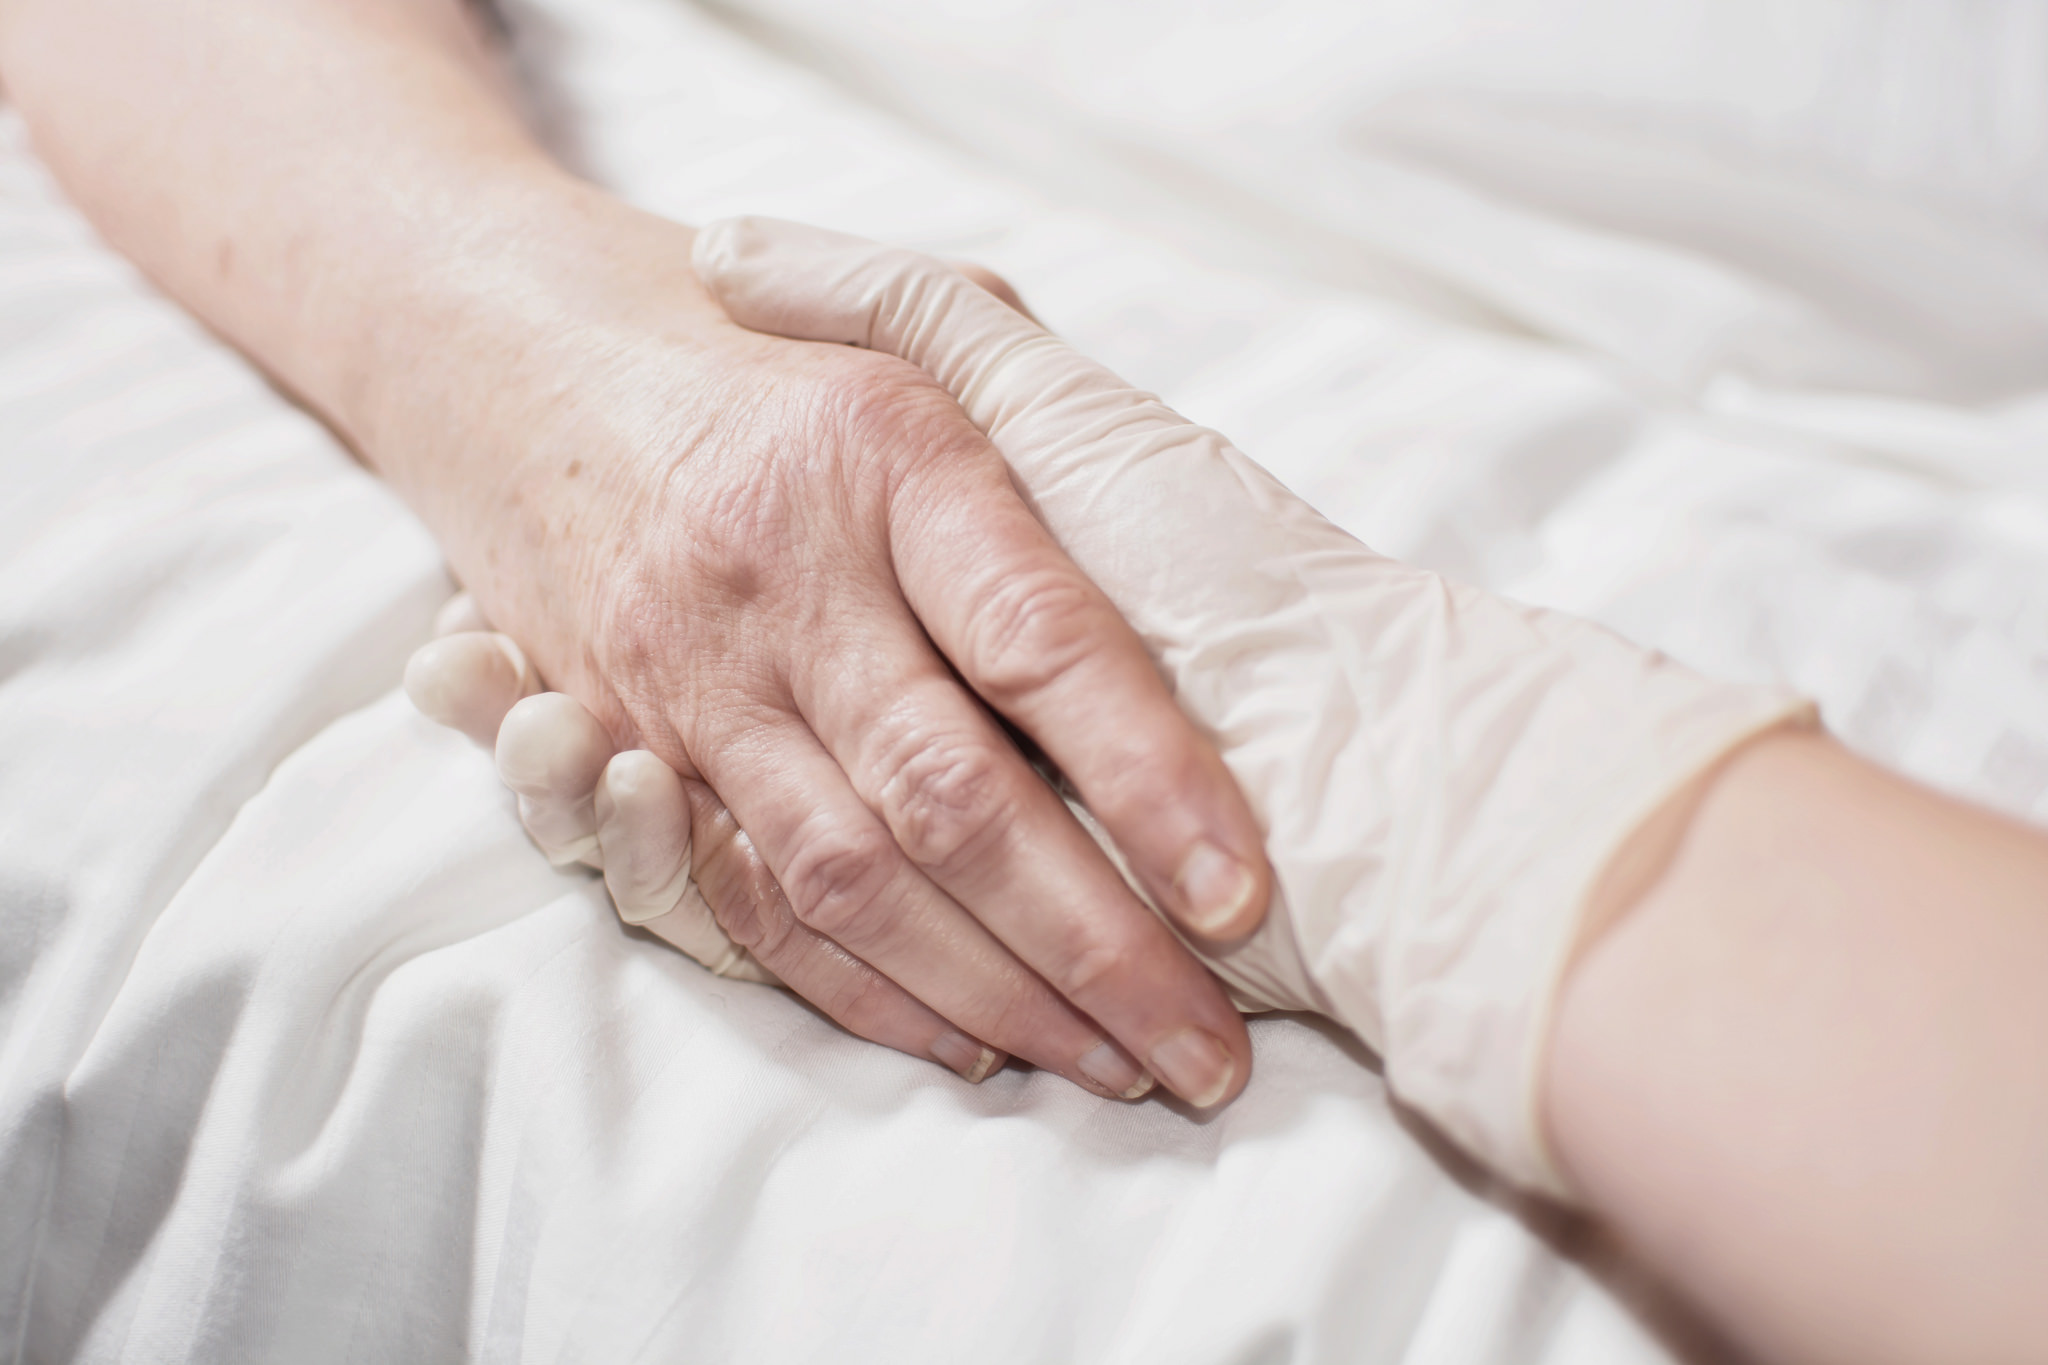 Is the Right to Die an Issue for the Poor?